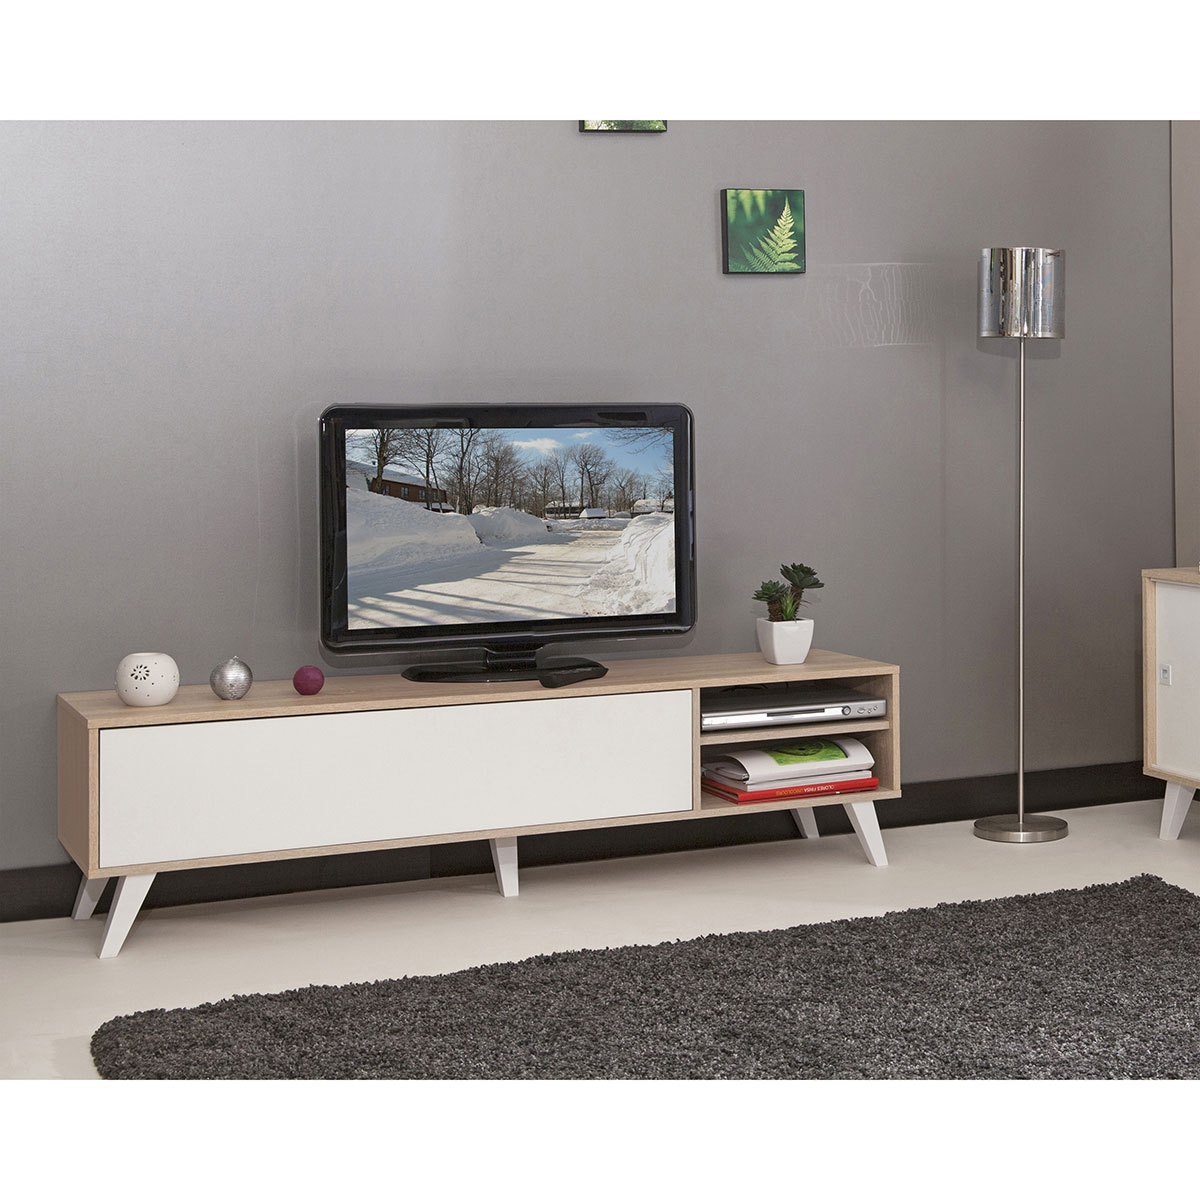 achat meuble tv pas cher maison et mobilier d 39 int rieur. Black Bedroom Furniture Sets. Home Design Ideas